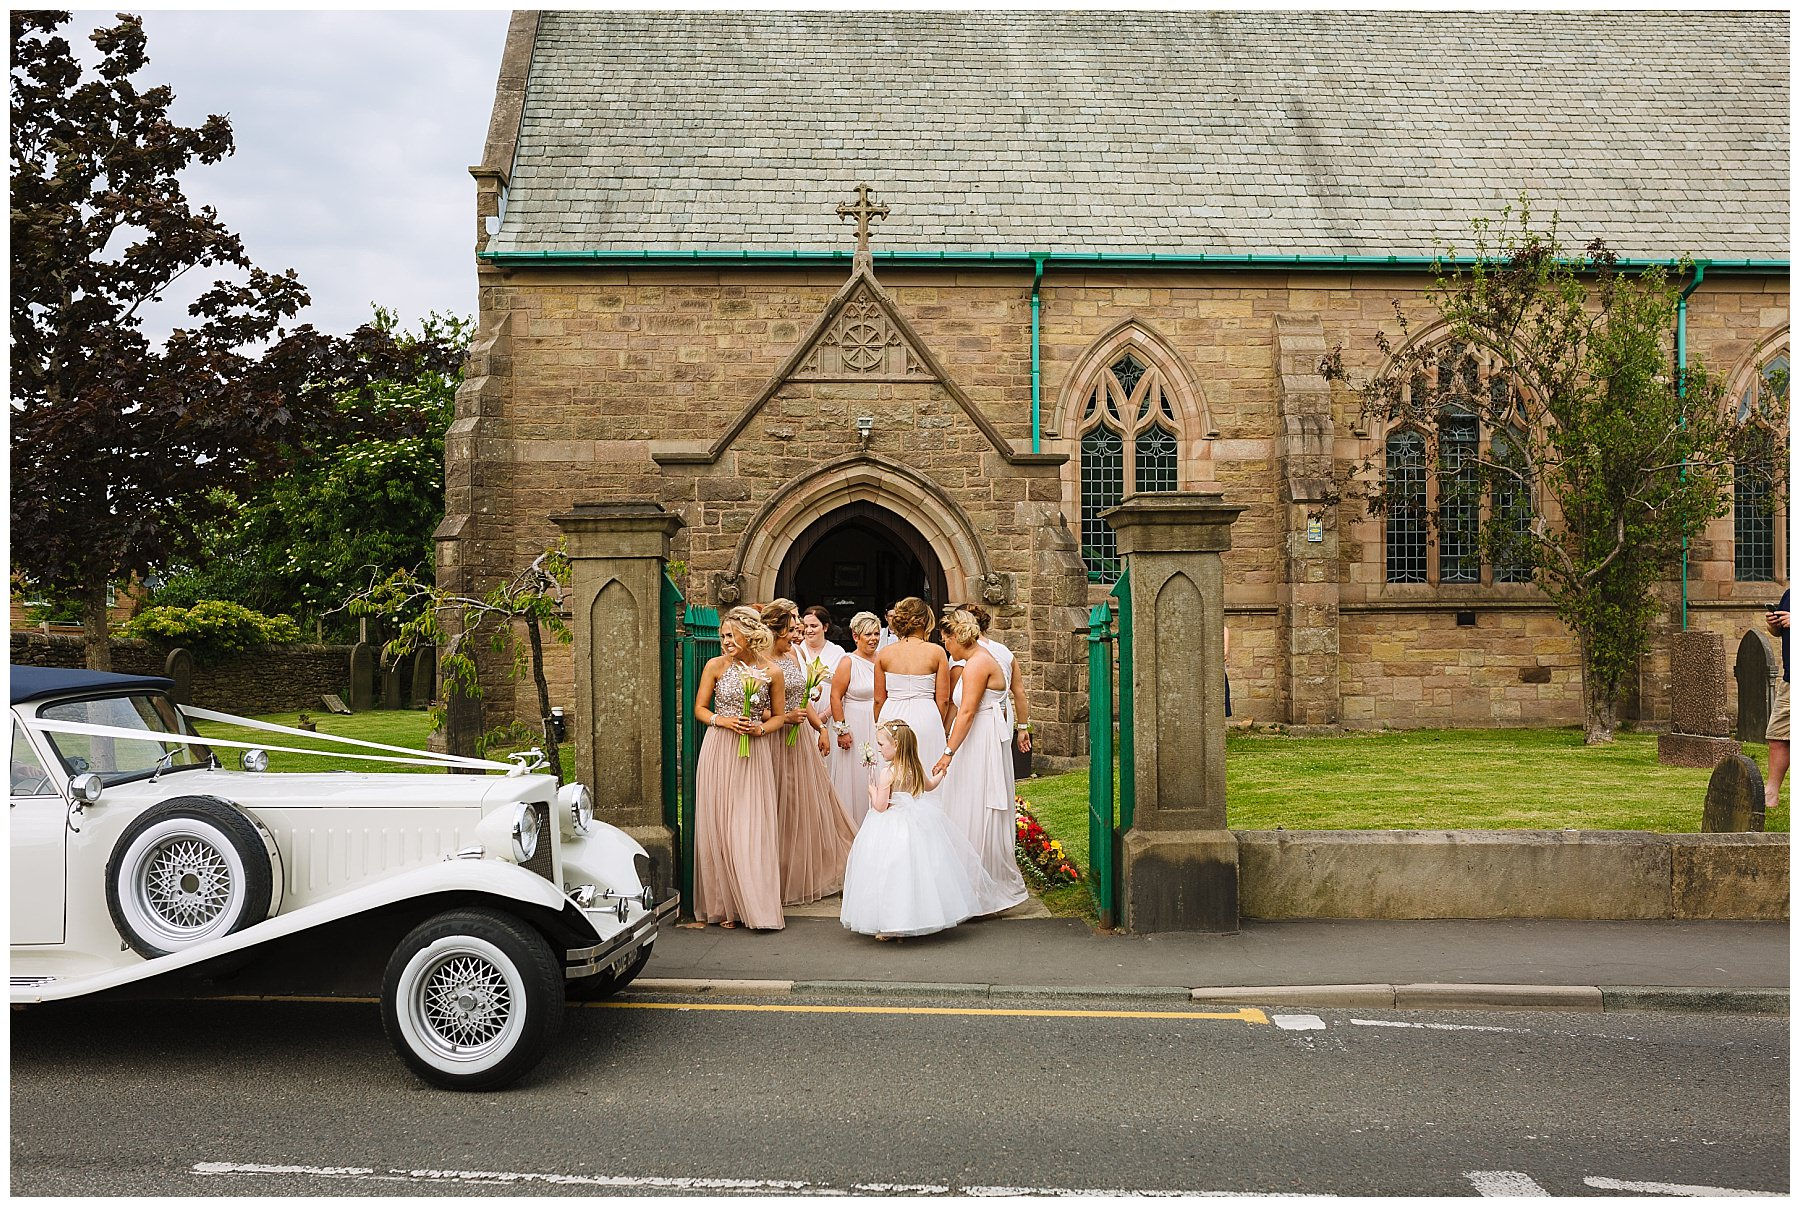 Bridesmaids wait outside church as the bridal car arrives